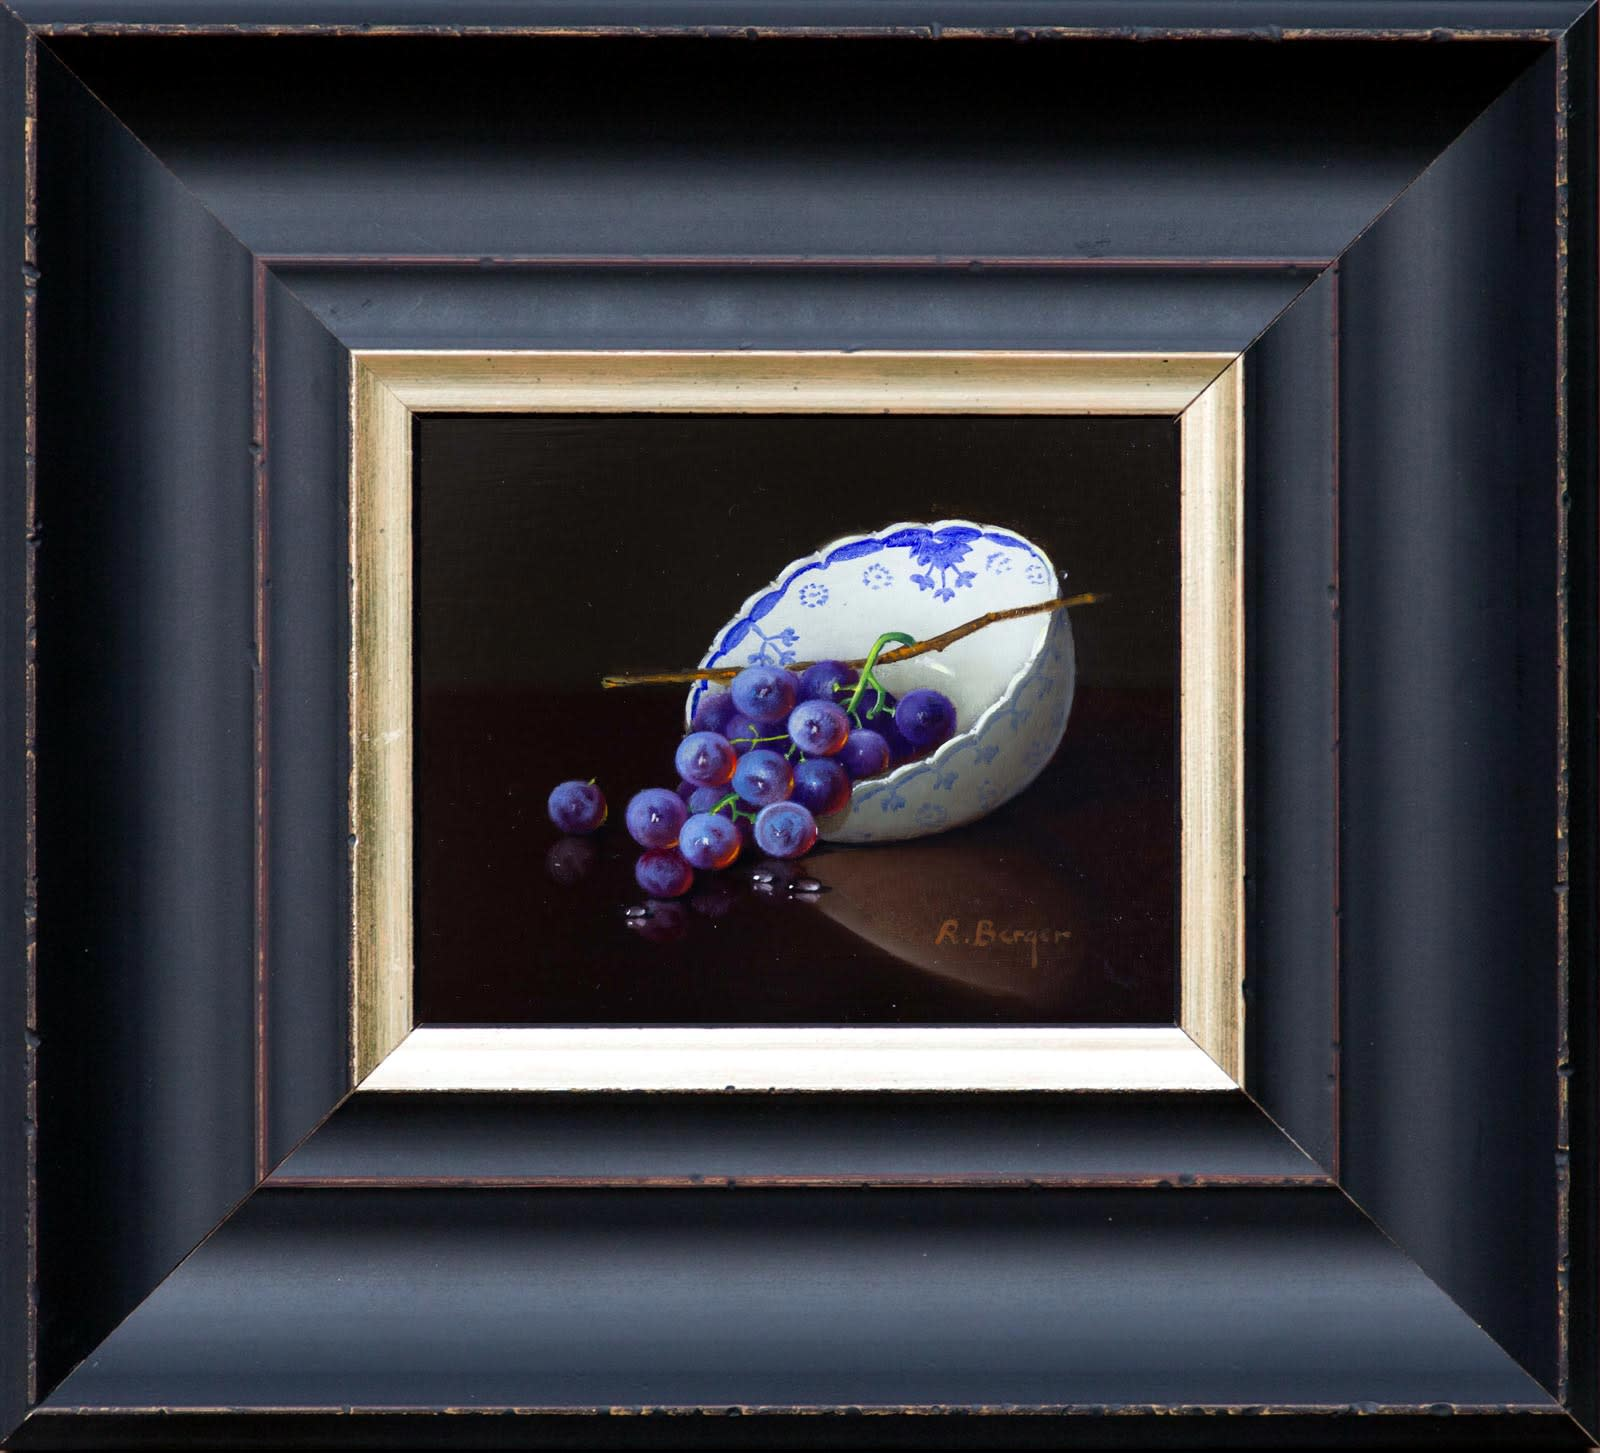 Grapes in Porcelain Bowl, Ronald Berger